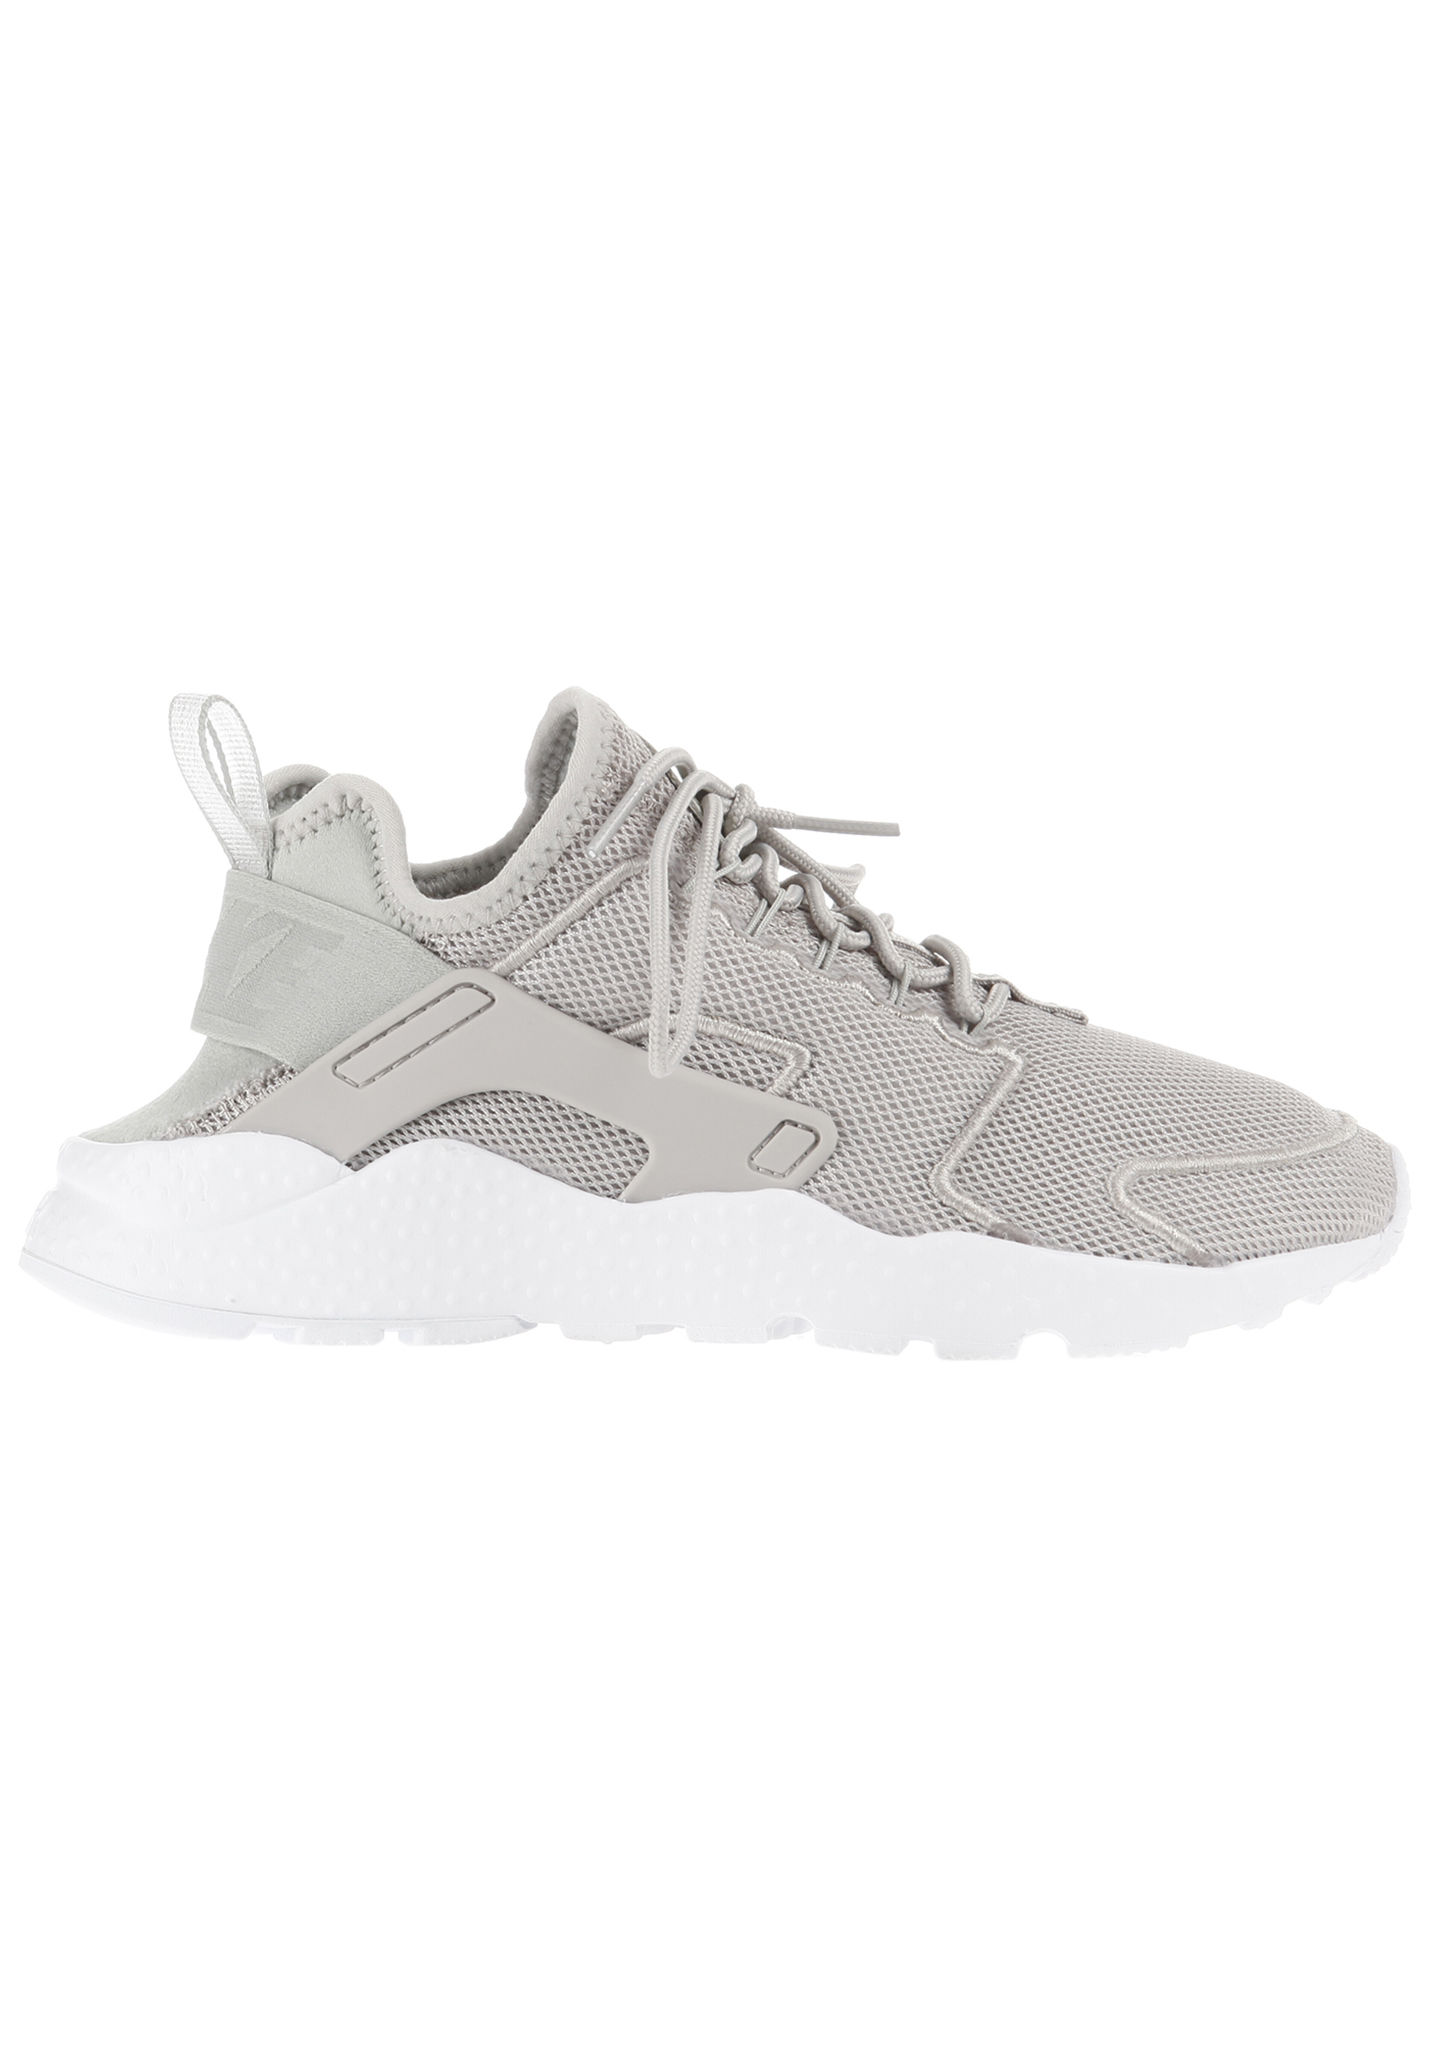 san francisco e4b99 183a5 NIKE SPORTSWEAR Air Huarache Run Ultra BR - Sneakers for Women - Grey -  Planet Sports